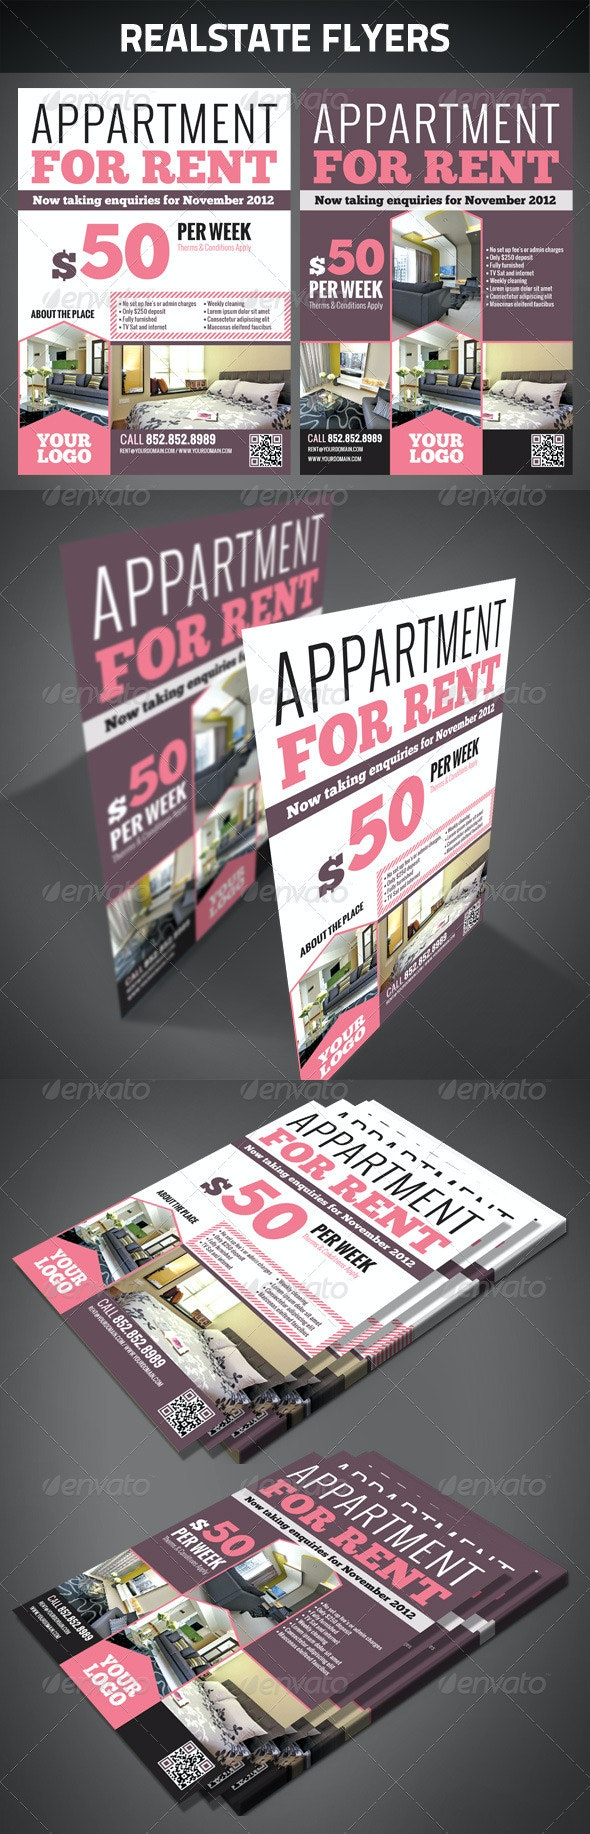 Realestate Flyers - Corporate Flyers